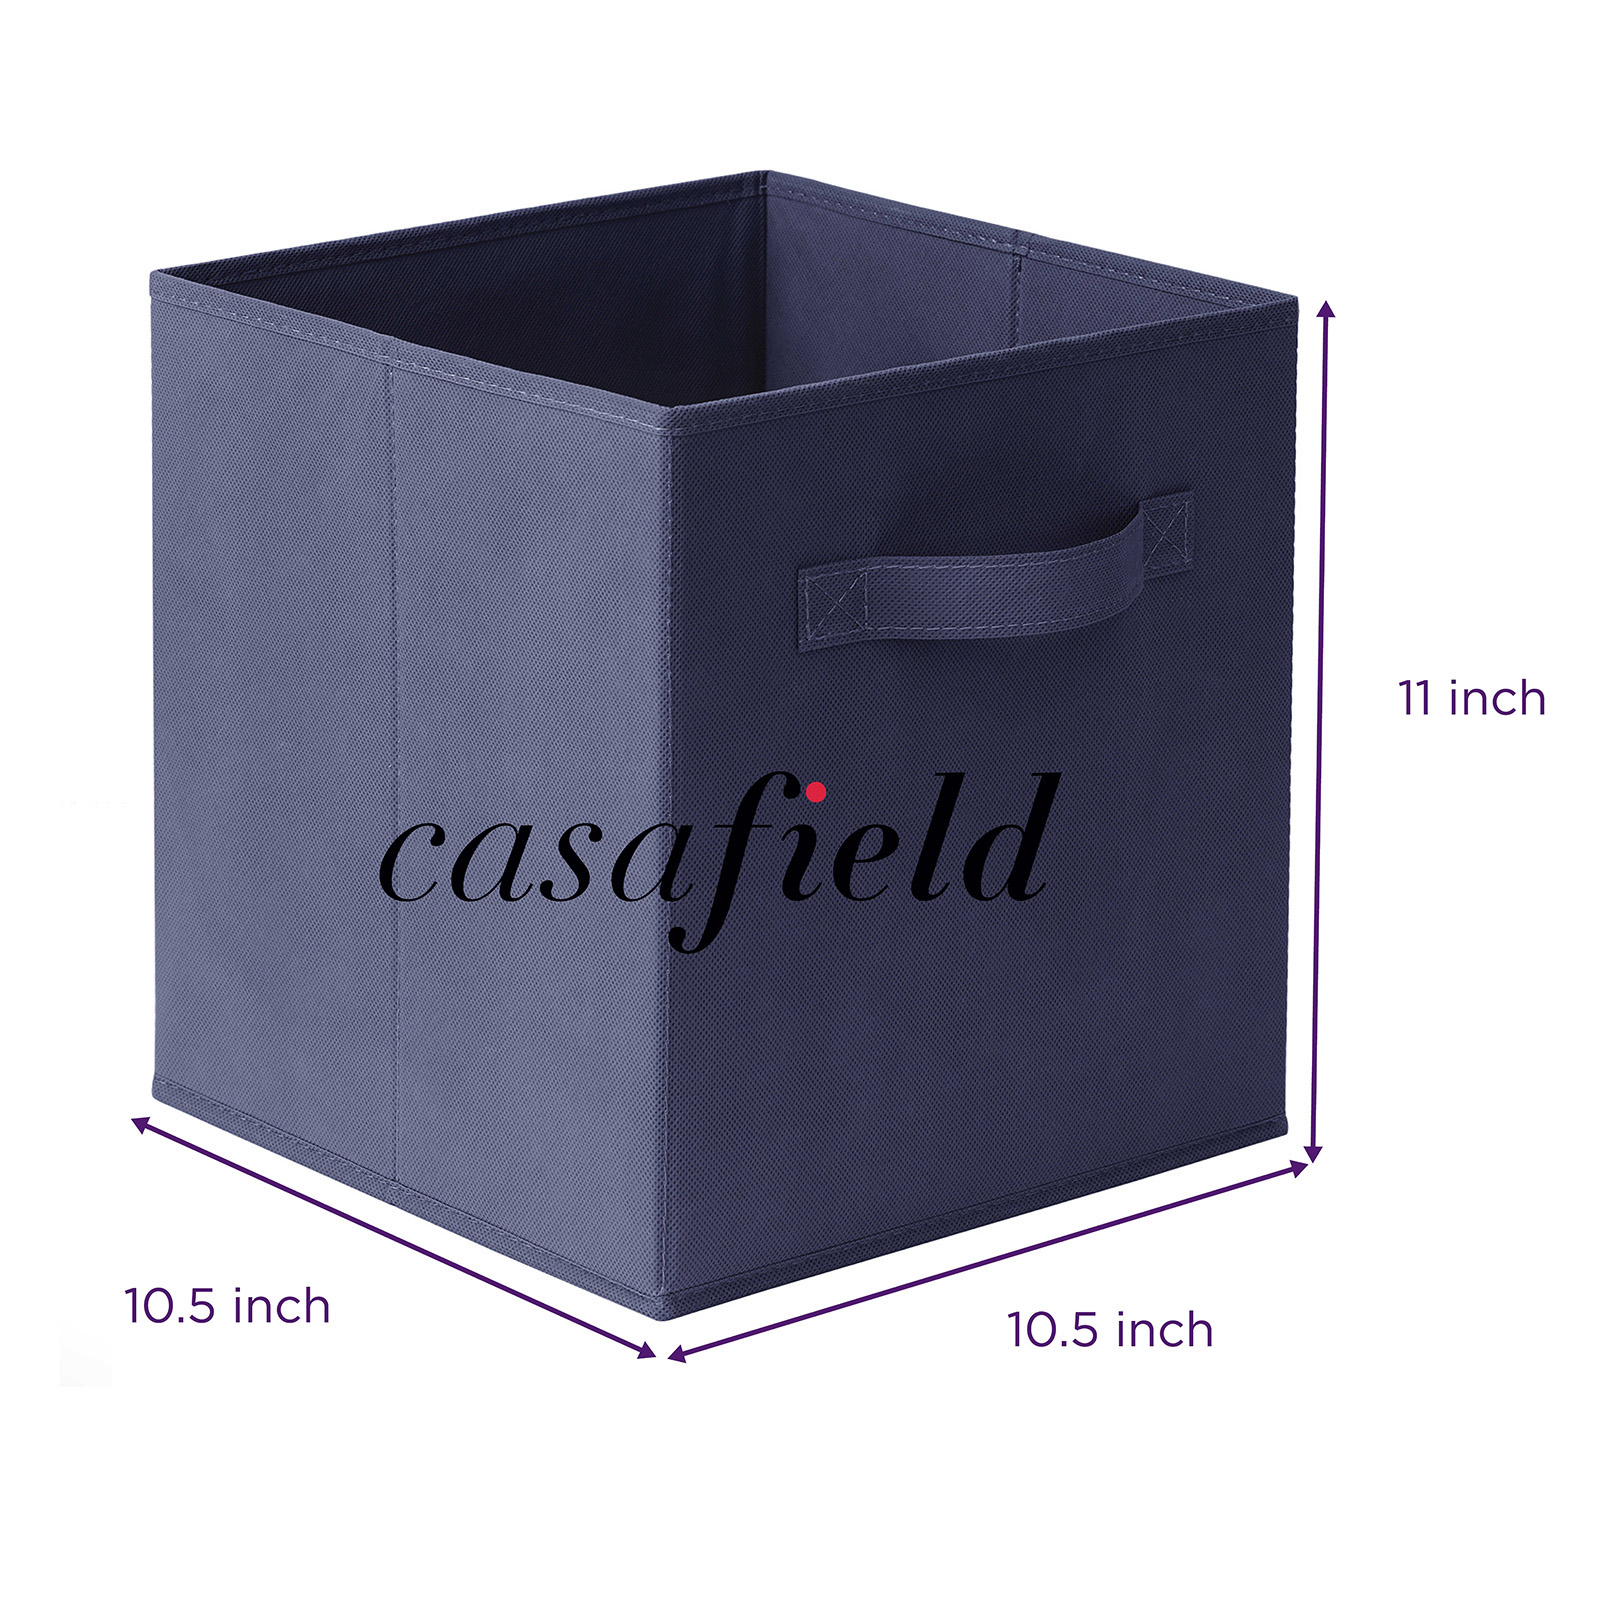 6-Collapsible-Foldable-Cloth-Fabric-Cubby-Cube-Storage-Bins-Baskets-for-Shelves thumbnail 59